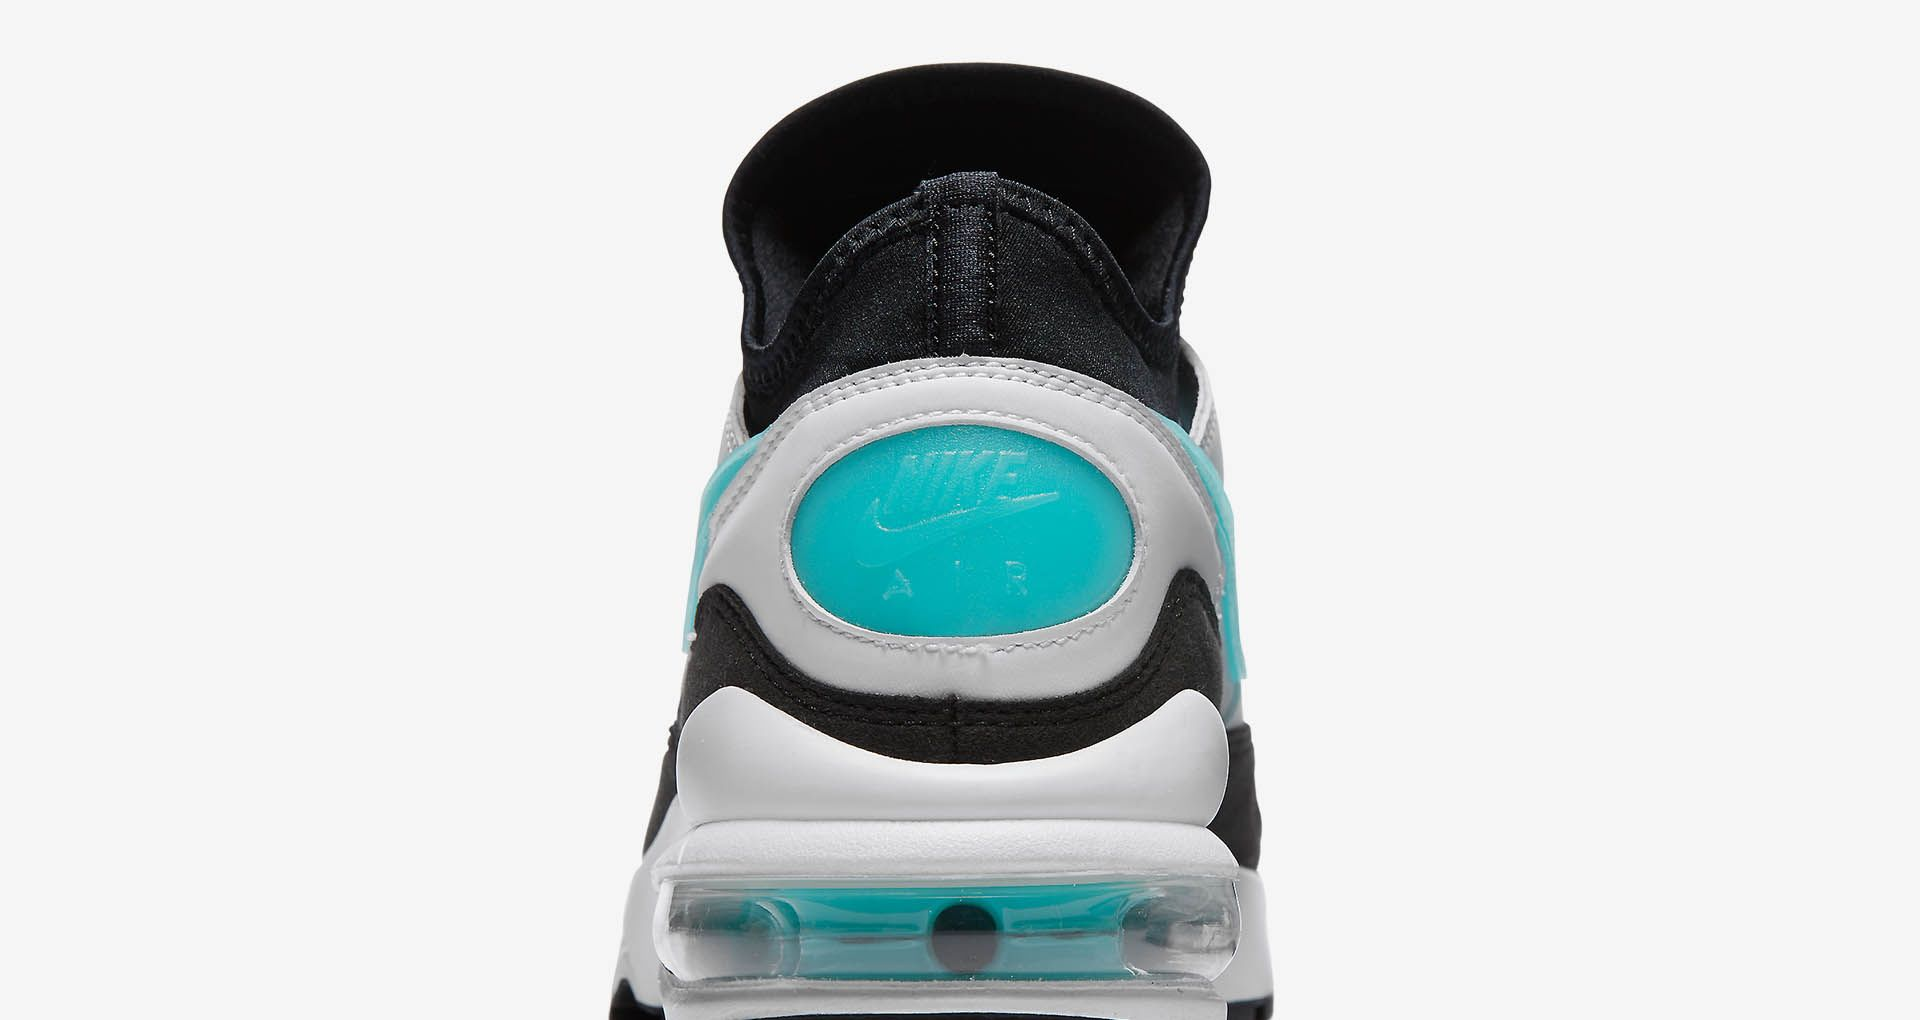 53461232bf Nike Air Max 'White & Sport Turquoise' Release Date. Nike+ SNKRS